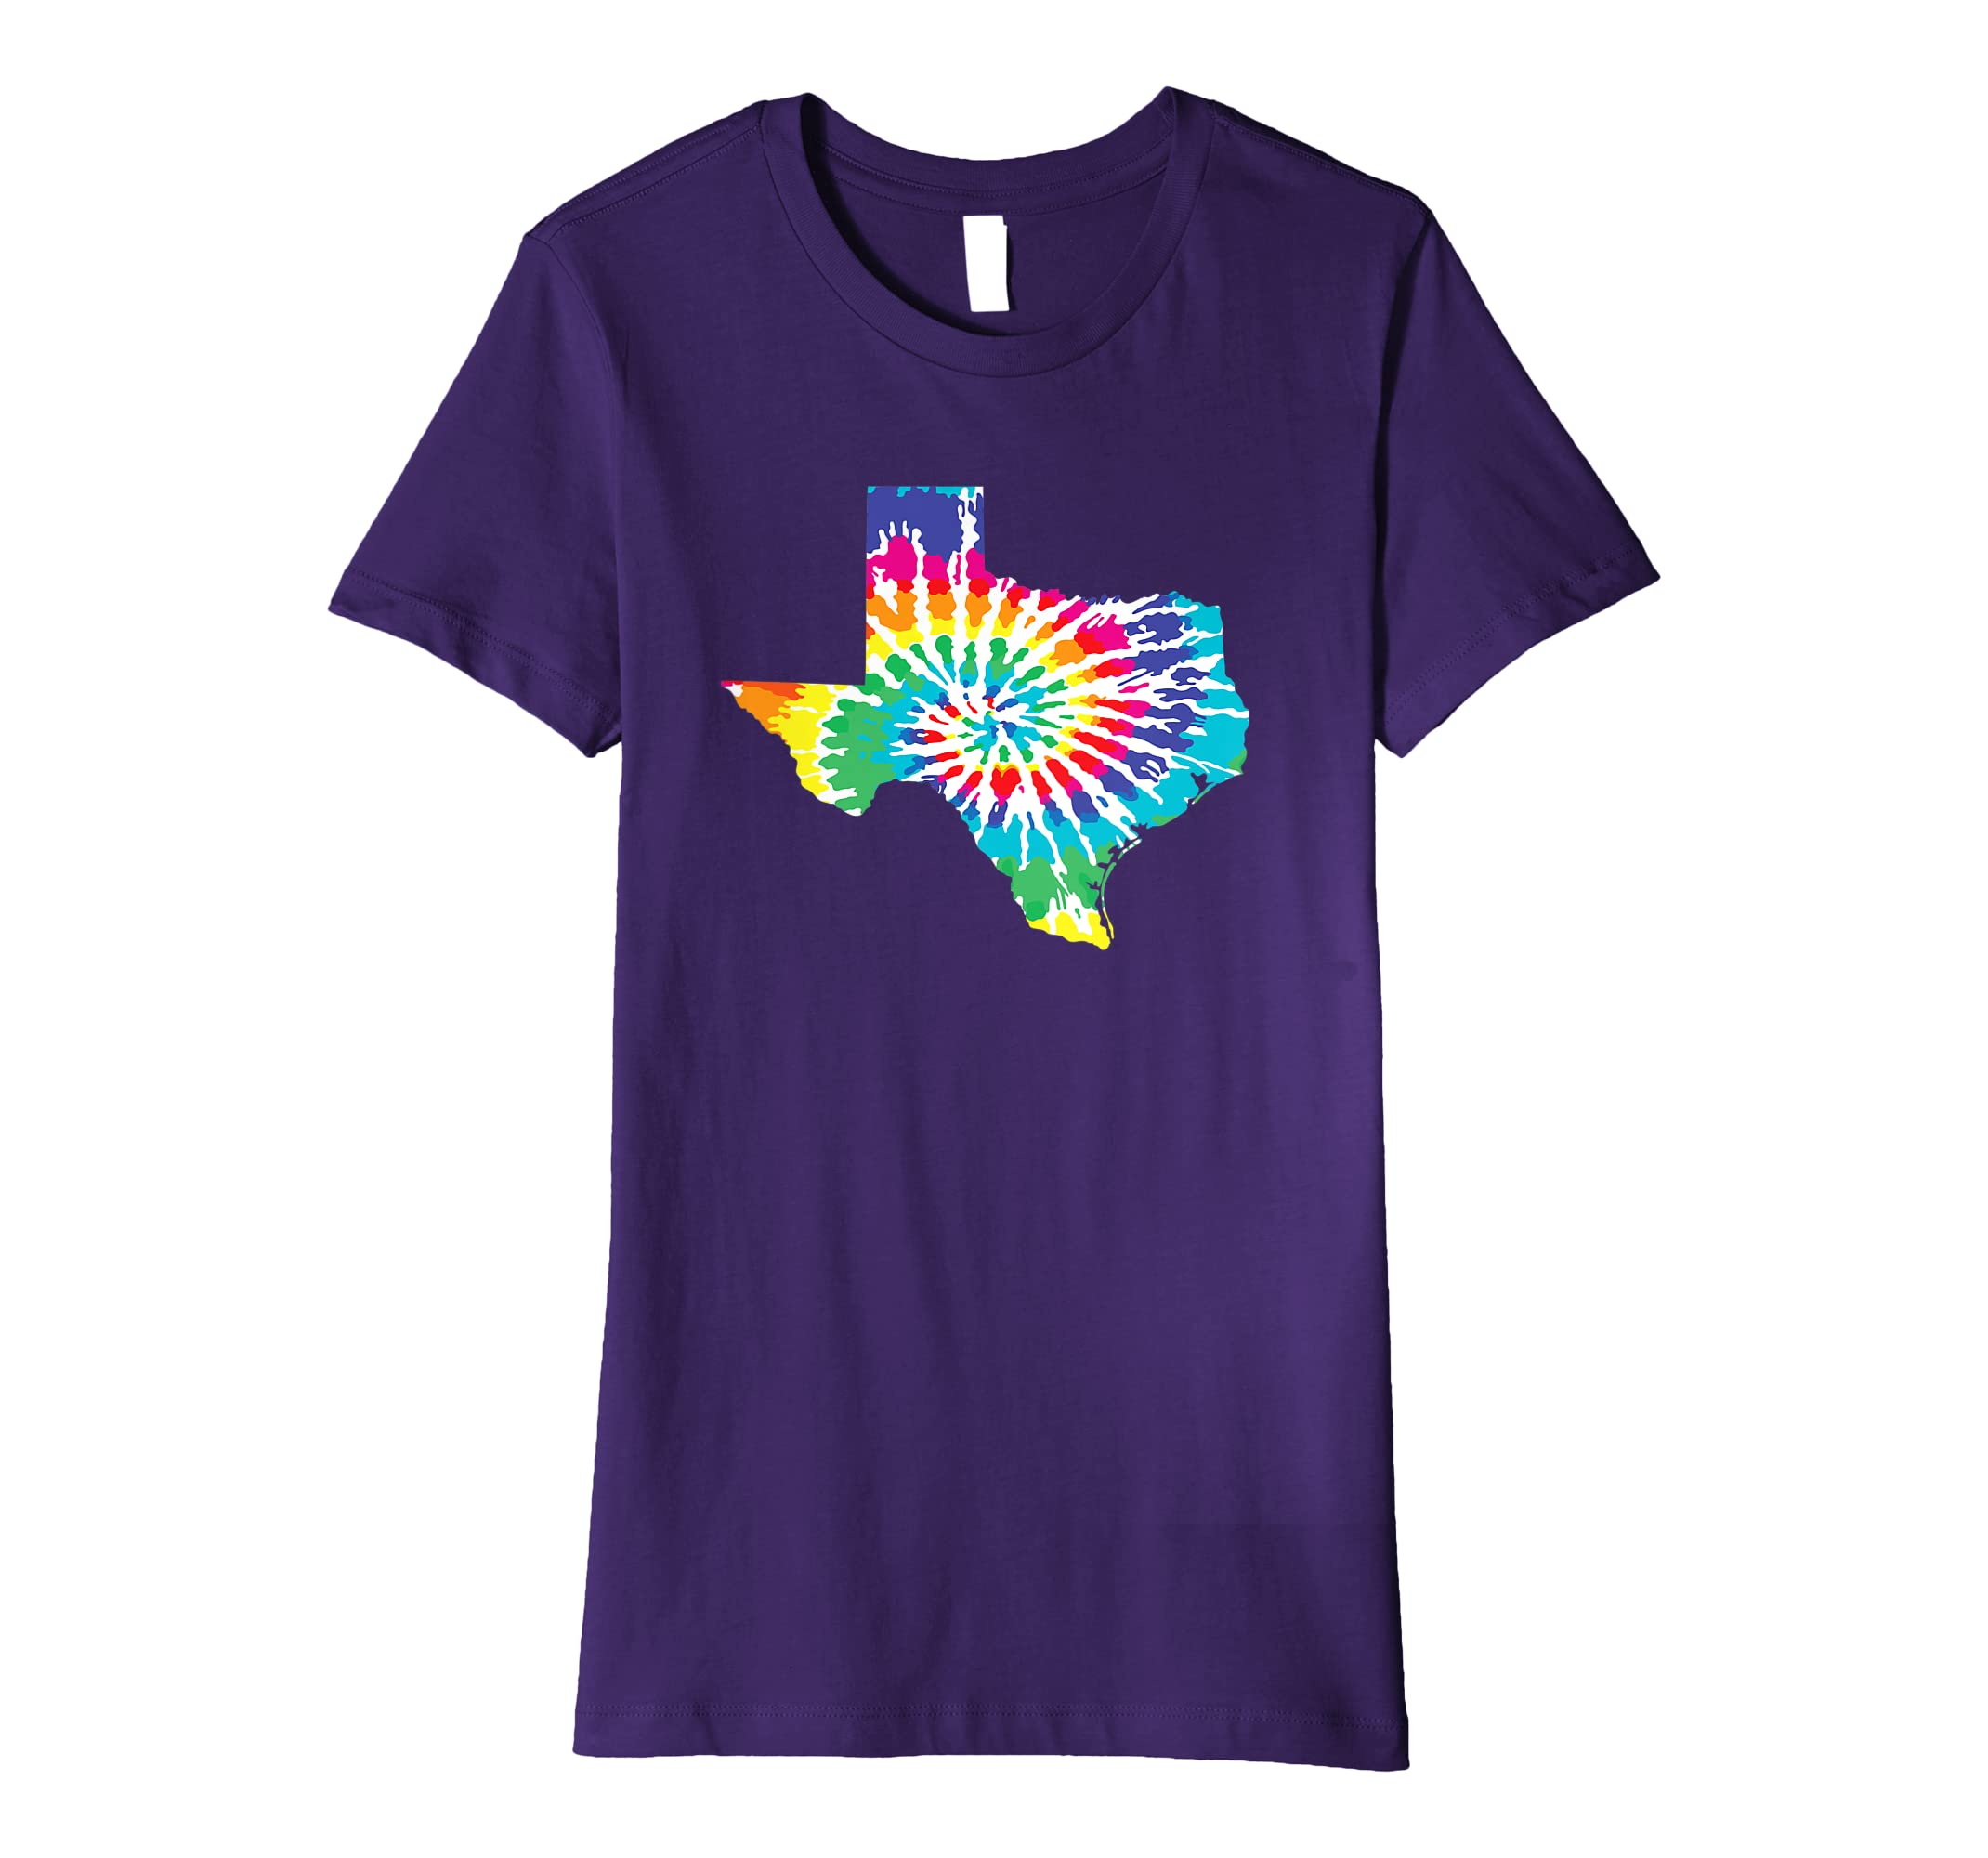 ef633406c Amazon.com: Tie Dye Texas Shirt Tie Dyed Print State Shape Tee T-Shirt:  Clothing